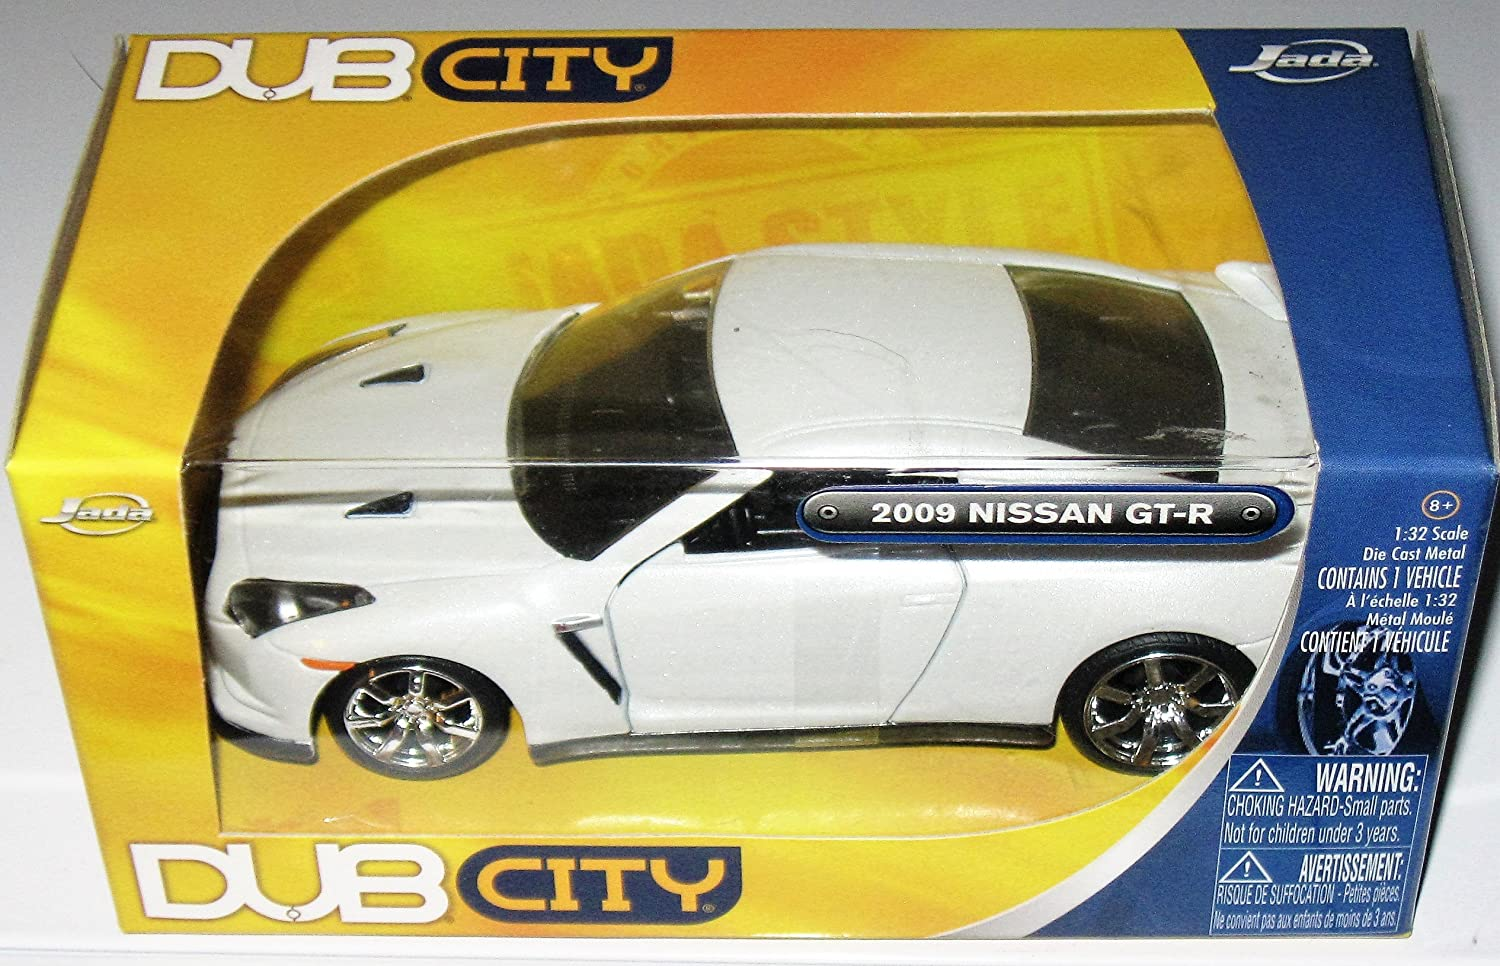 Dub City 2009 Nissan Gt-r White 1:32 Scale by Dub City